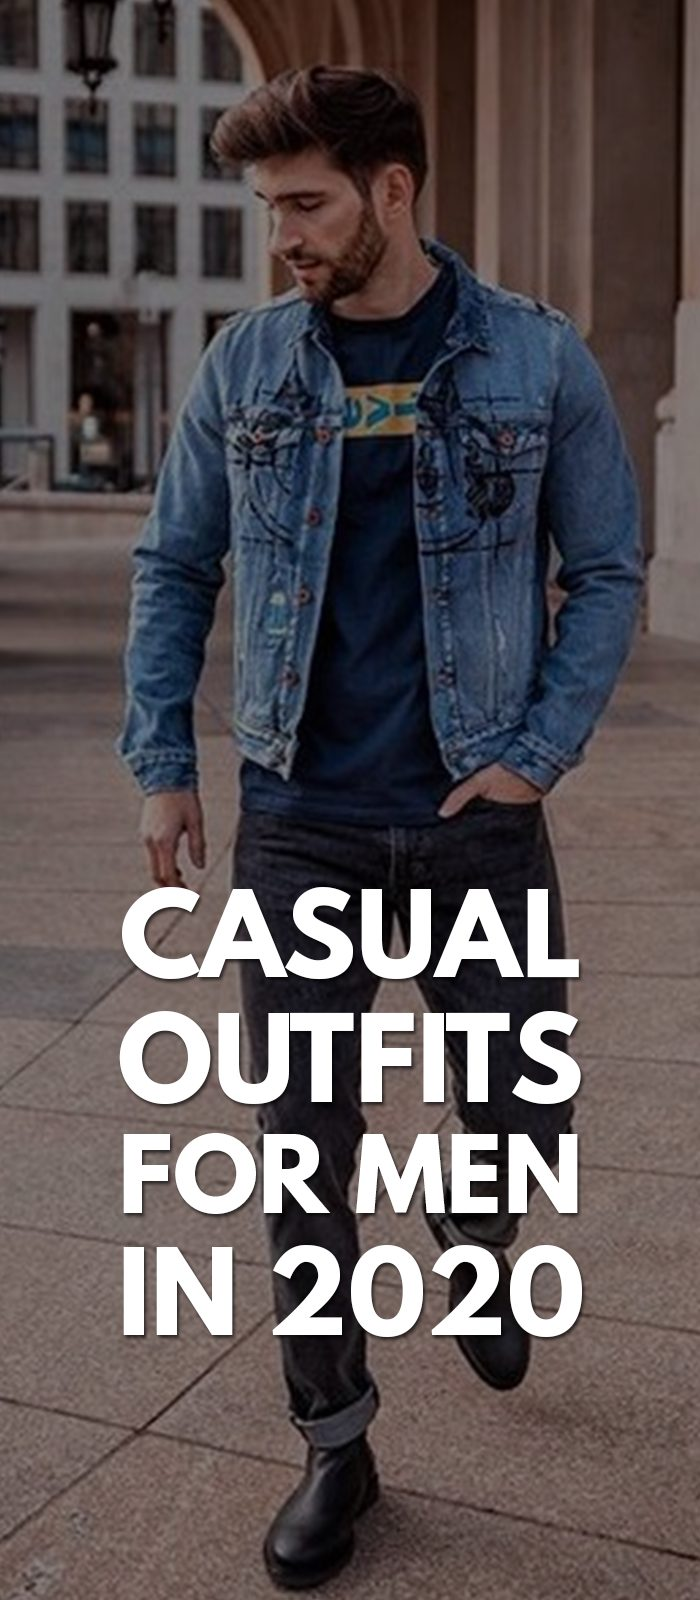 Casual Outfit Ideas for 2020